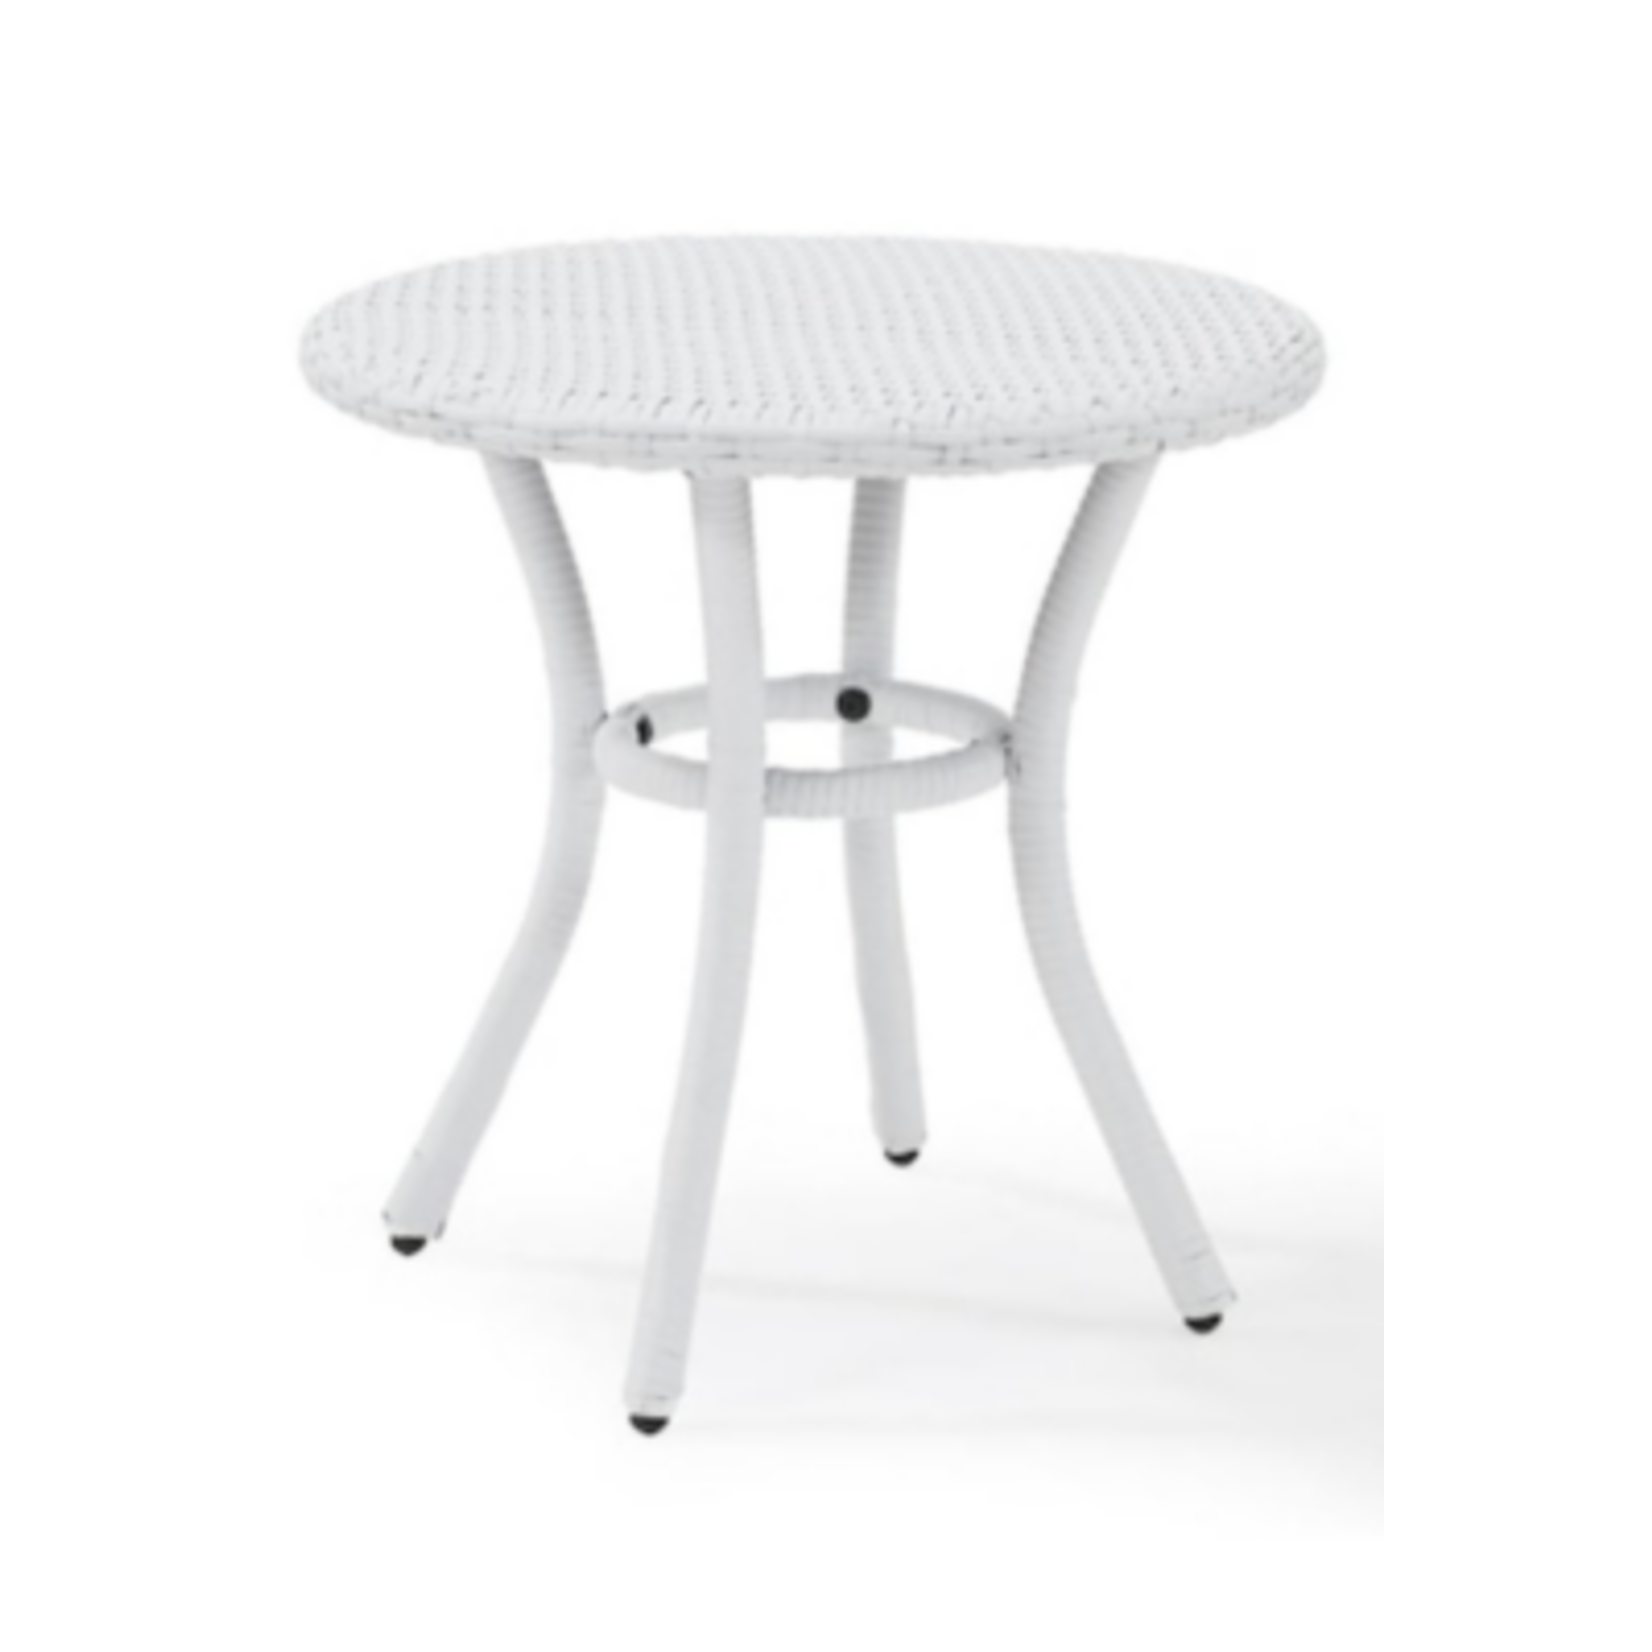 6438 Crosley Furniture Round Wicker End Table